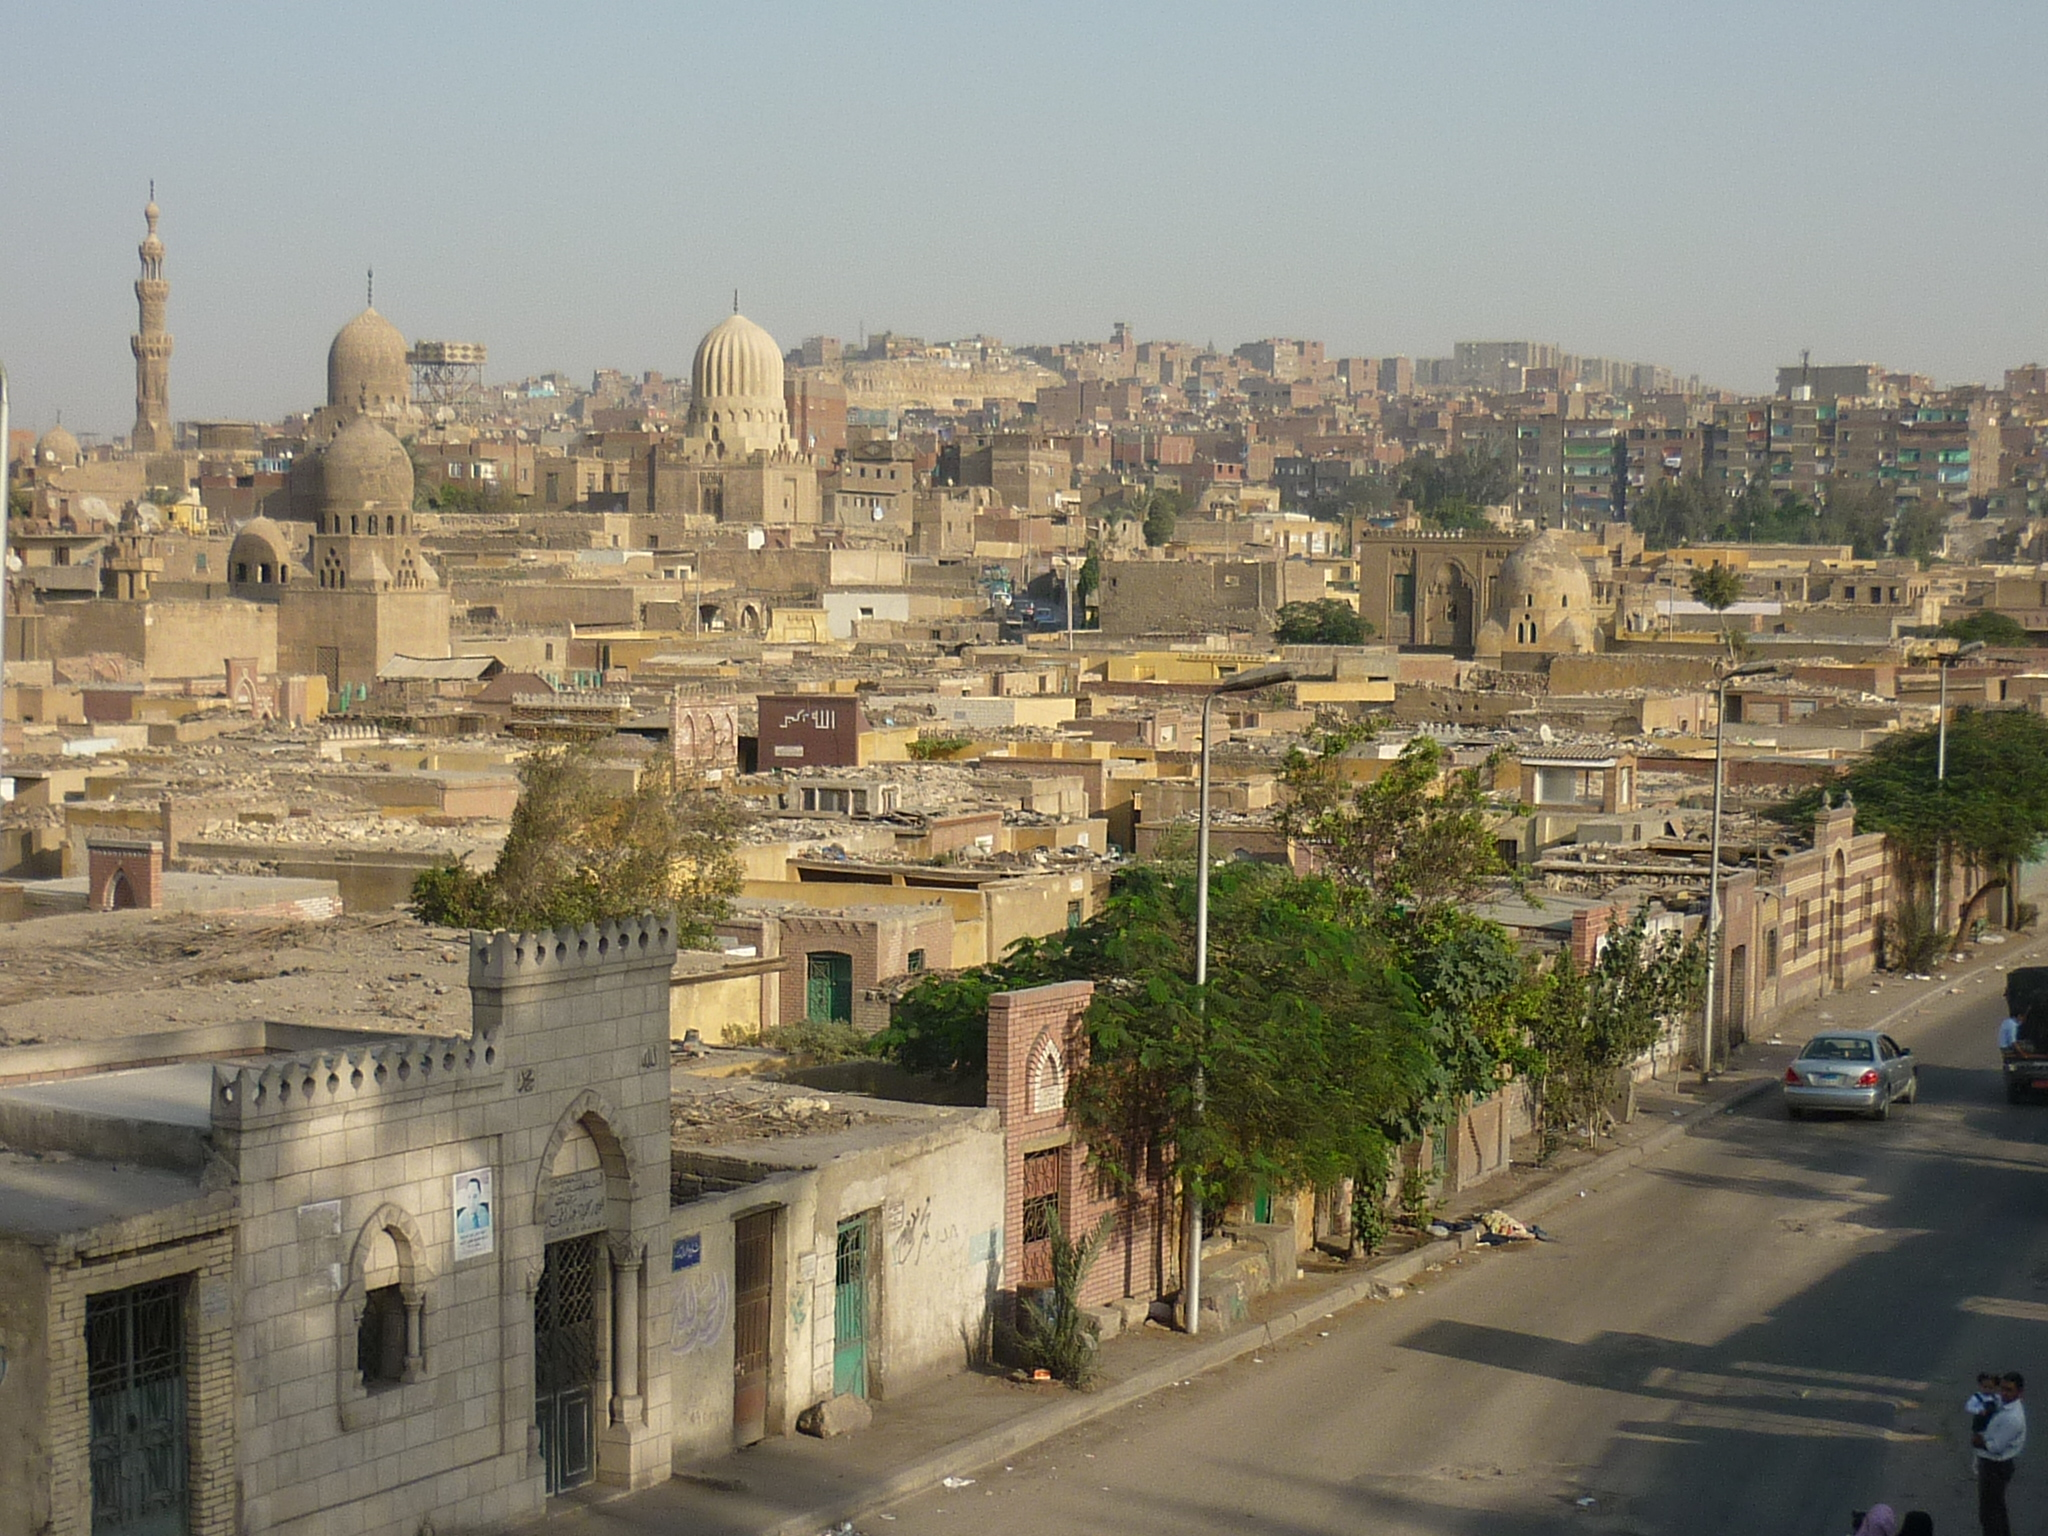 City of the Dead (Cairo) - Wikipedia